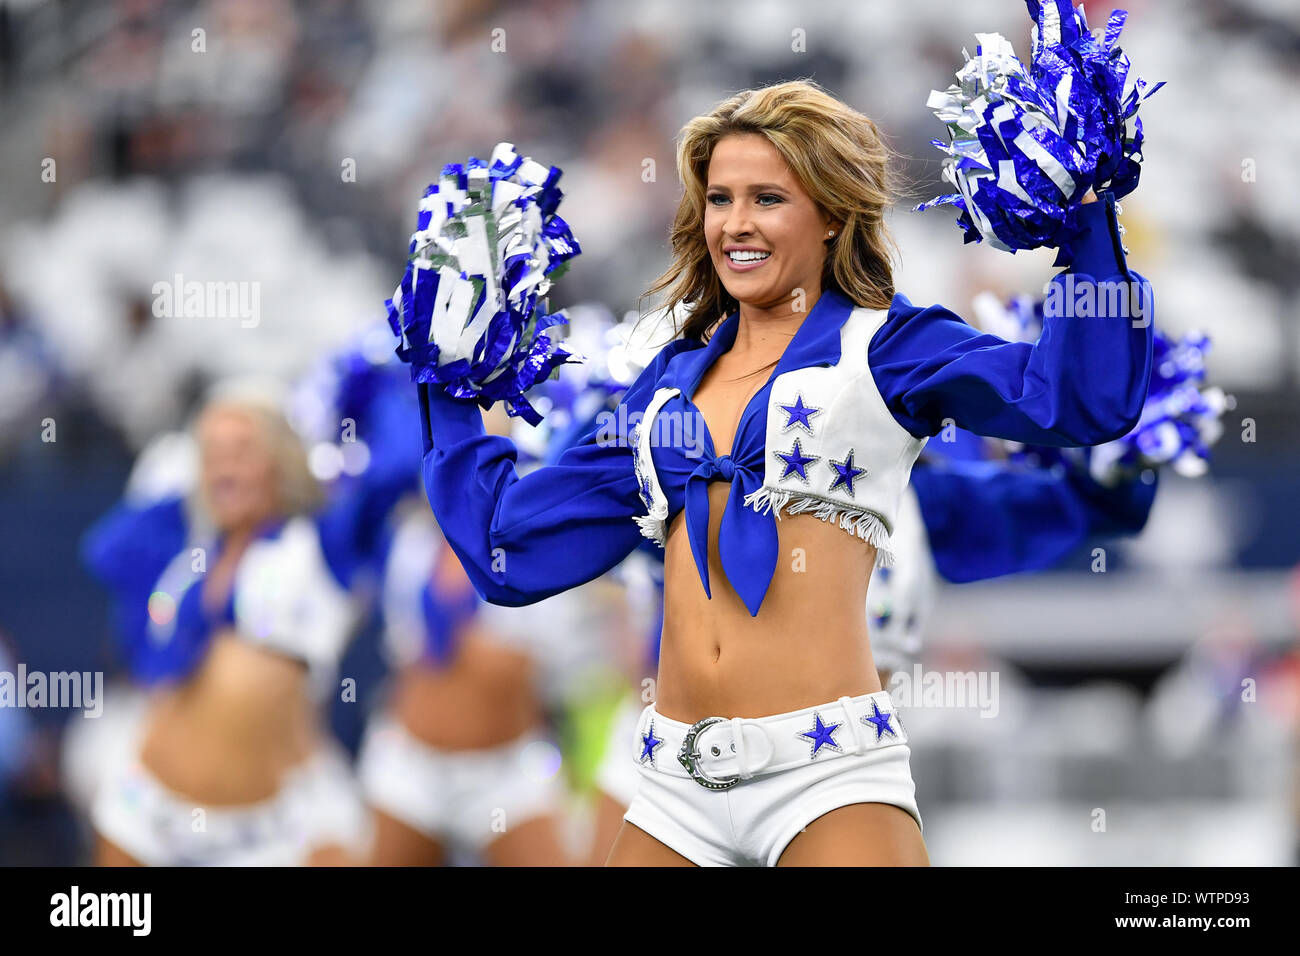 Arlington, Texas, USA. 8th Sep, 2019. The Dallas Cowboys cheerleaders perform prior to the first half of the NFL football game between the New York Giants and the Dallas Cowboys at AT&T Stadium in Arlington, Texas. Shane Roper/Cal Sport Media/Alamy Live News Stock Photo